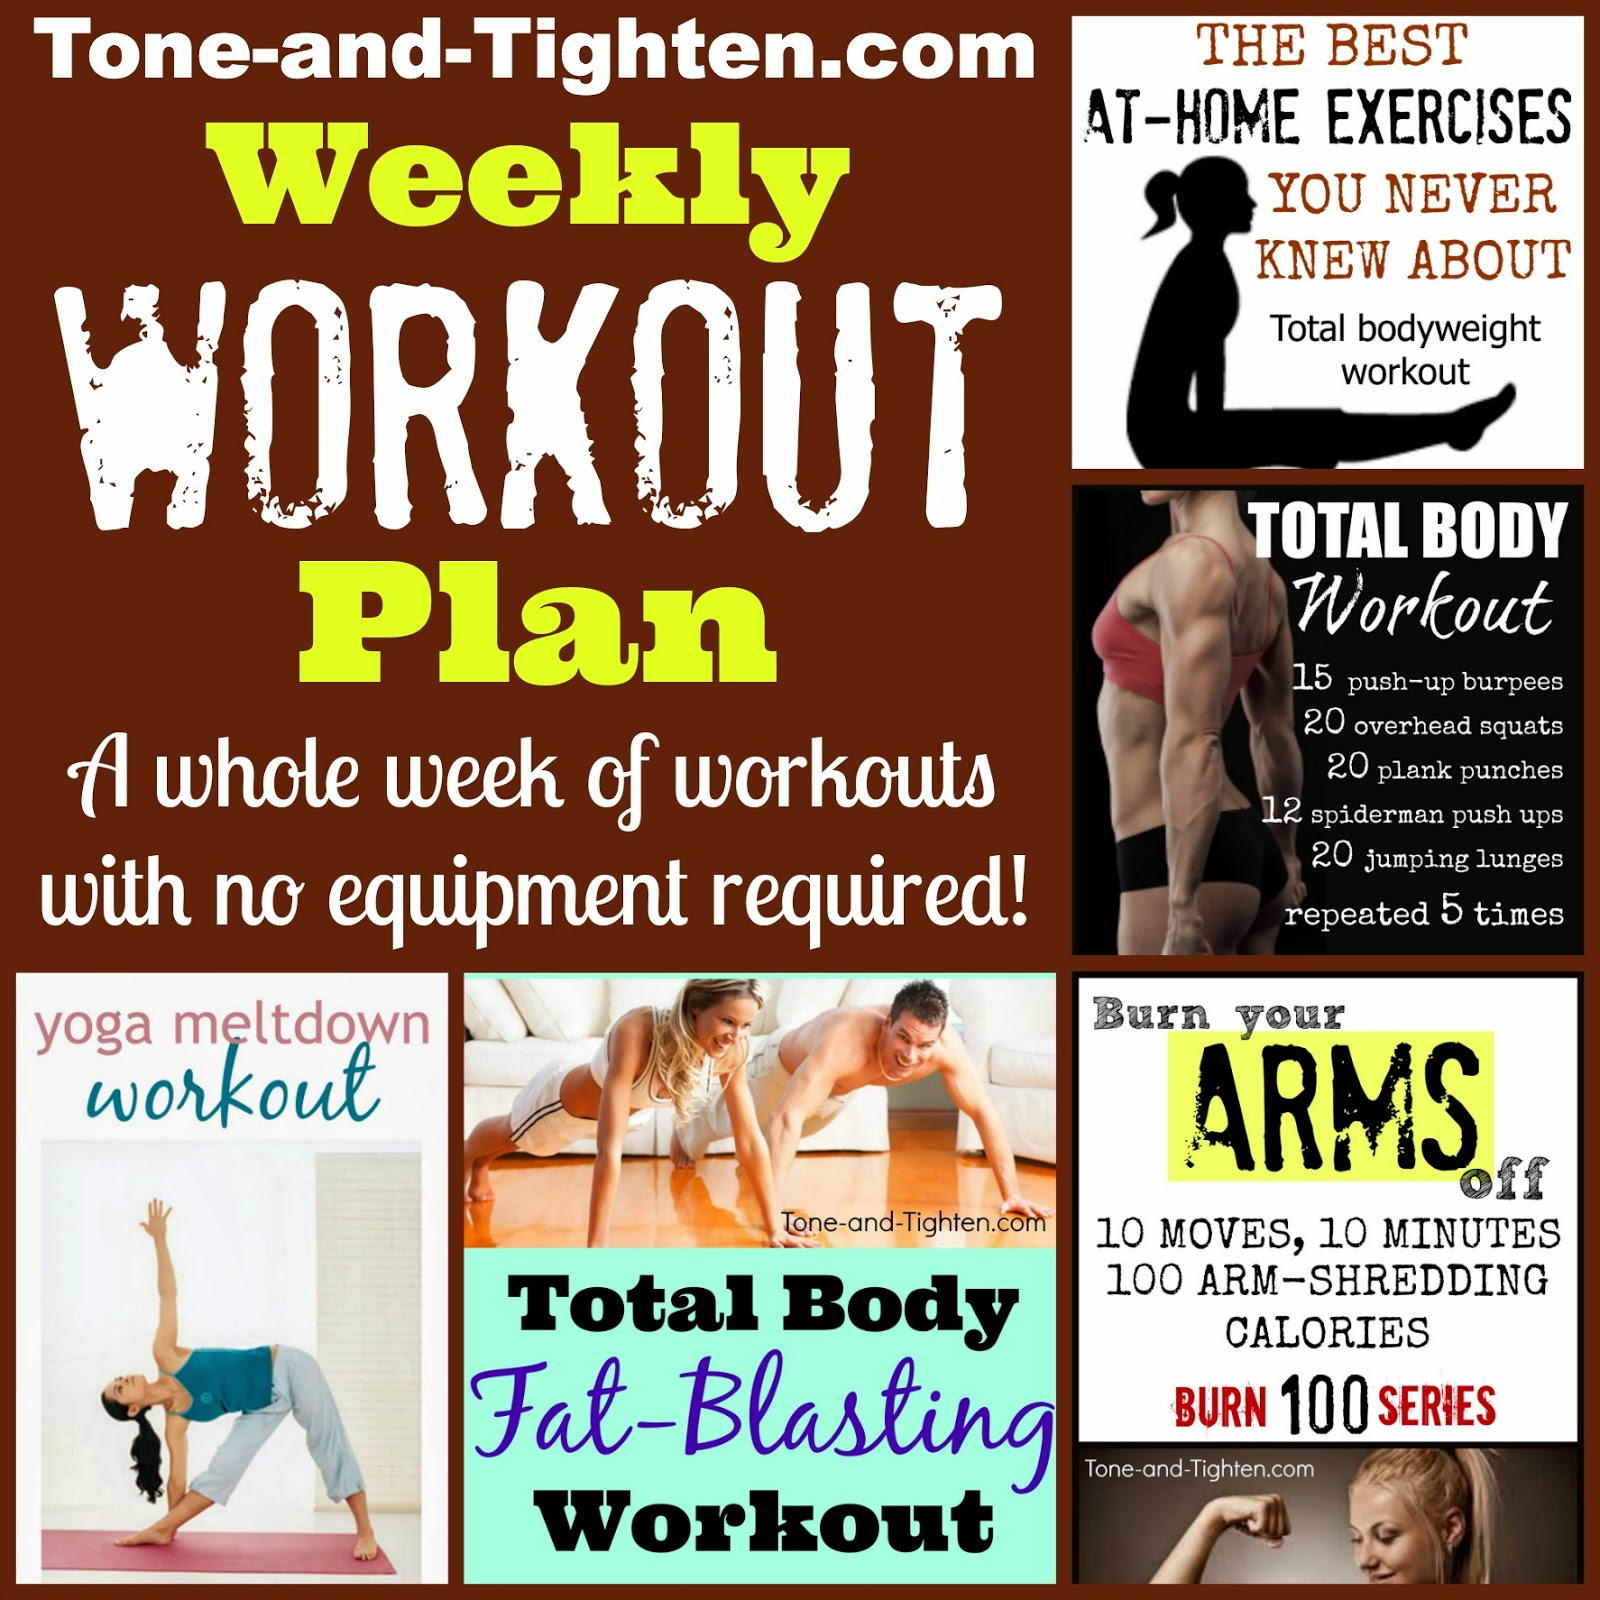 Exercise Workout Plan: At-Home Workouts With No Weights